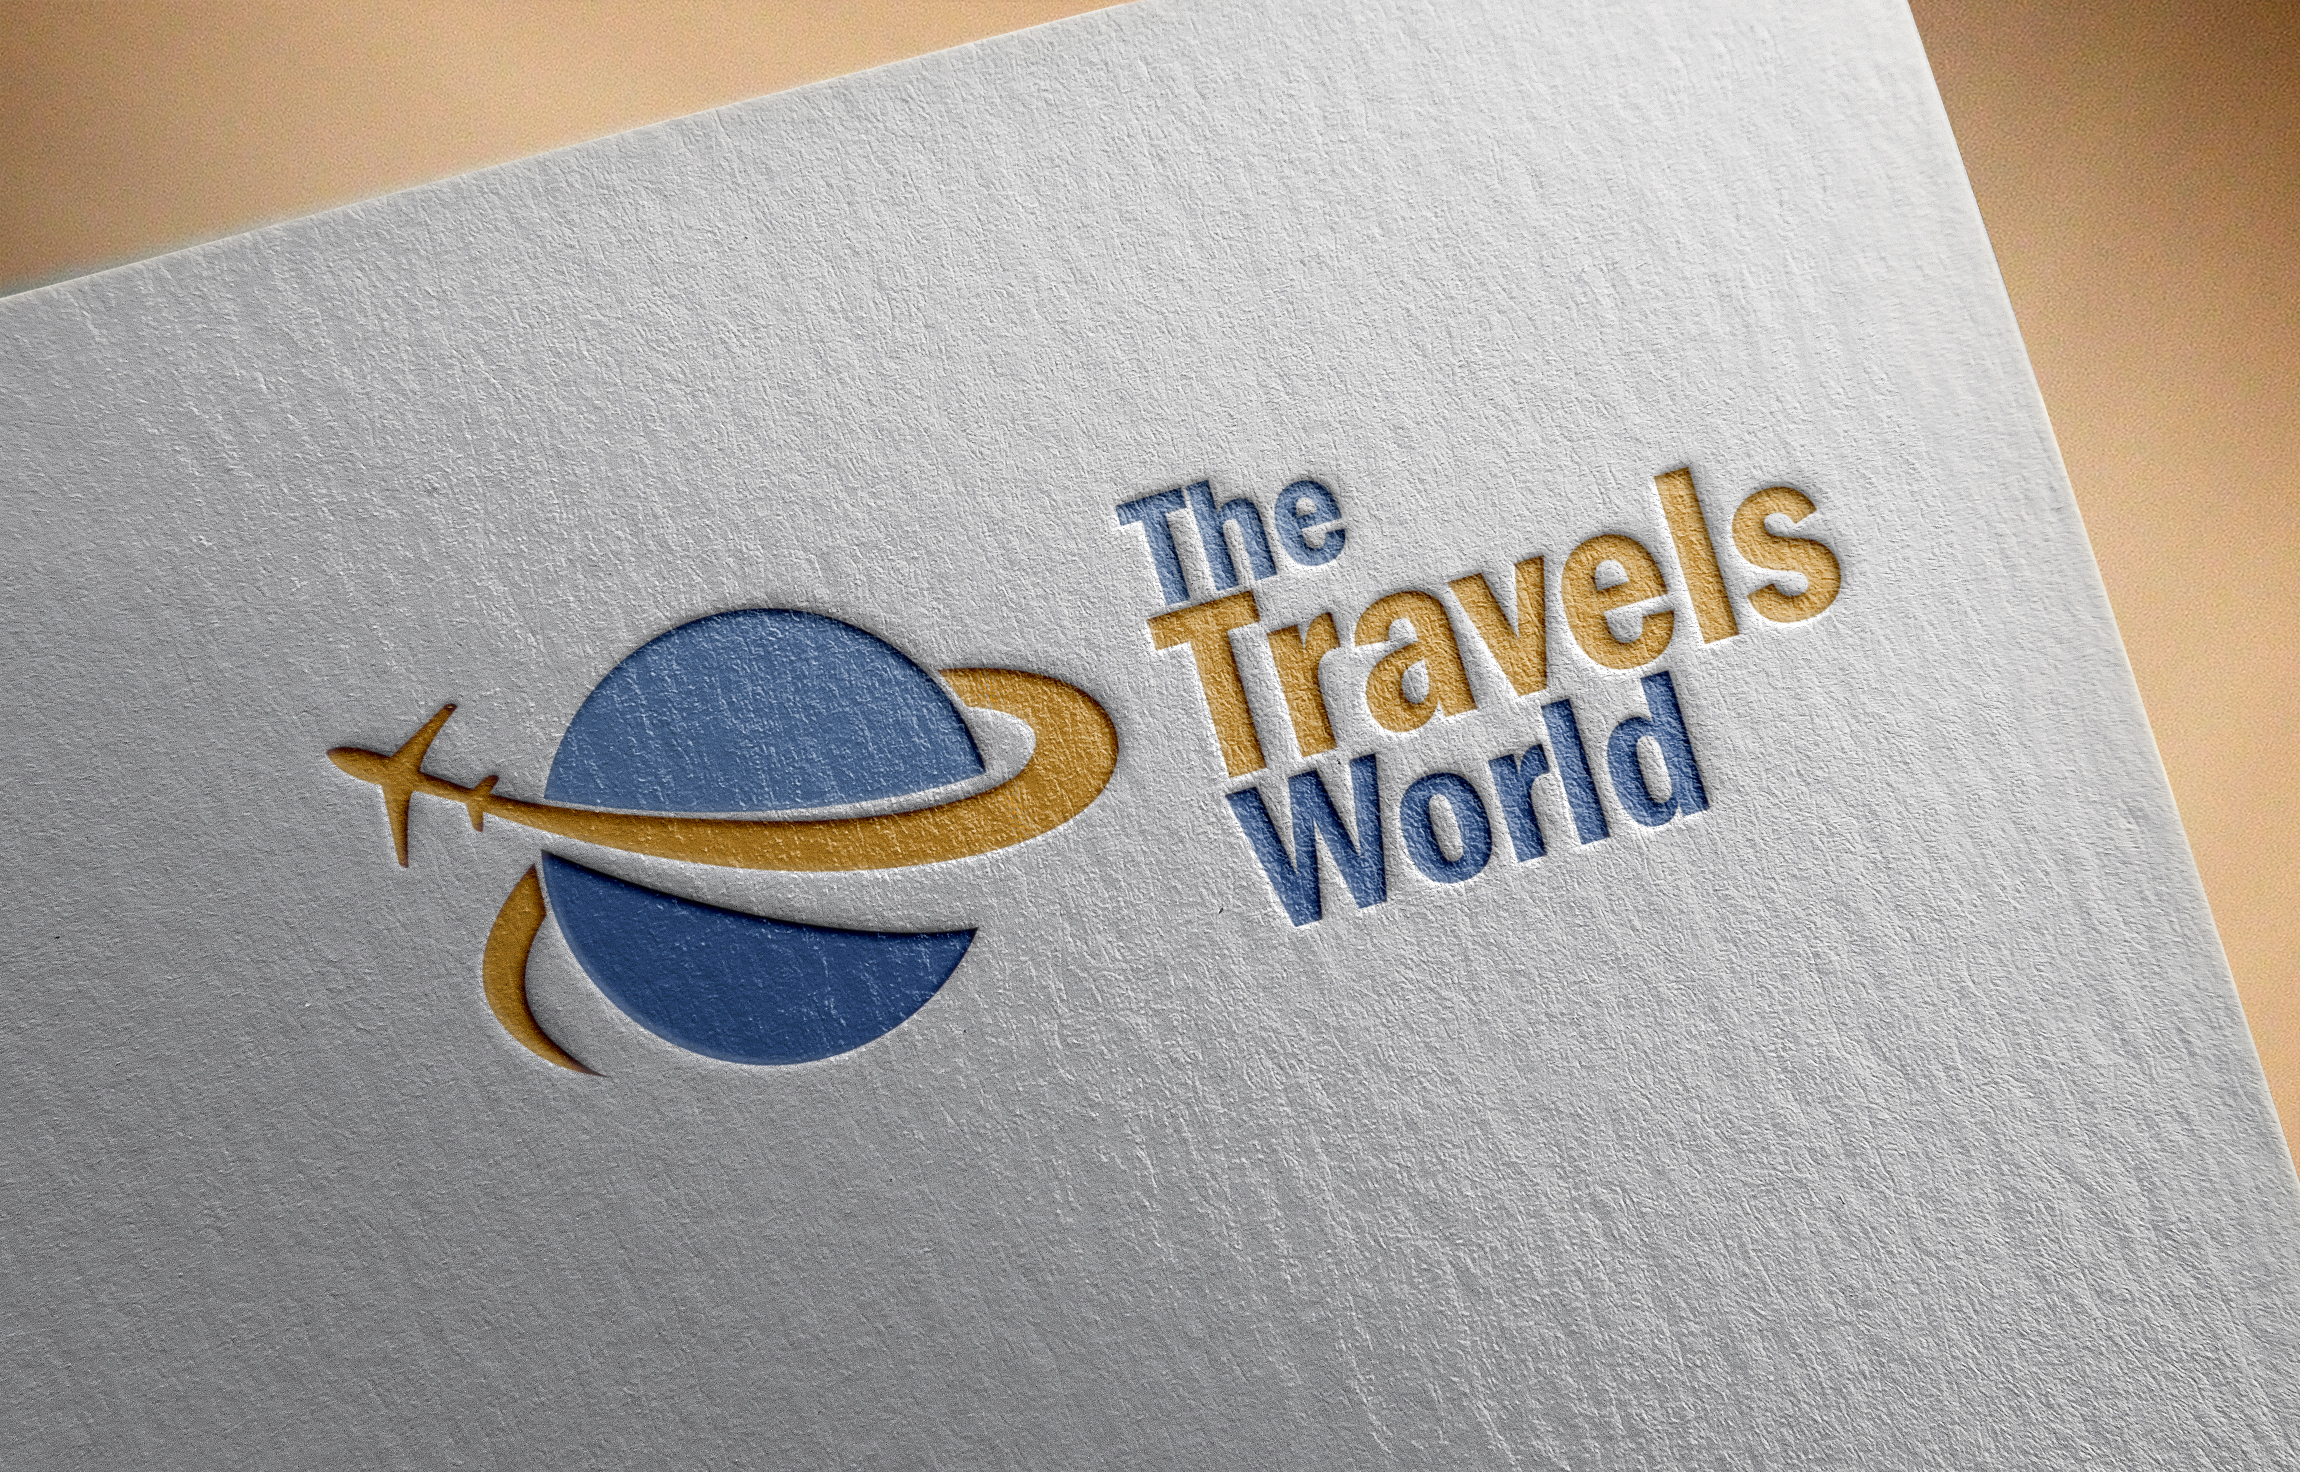 The travels world creative logo design by Badri design